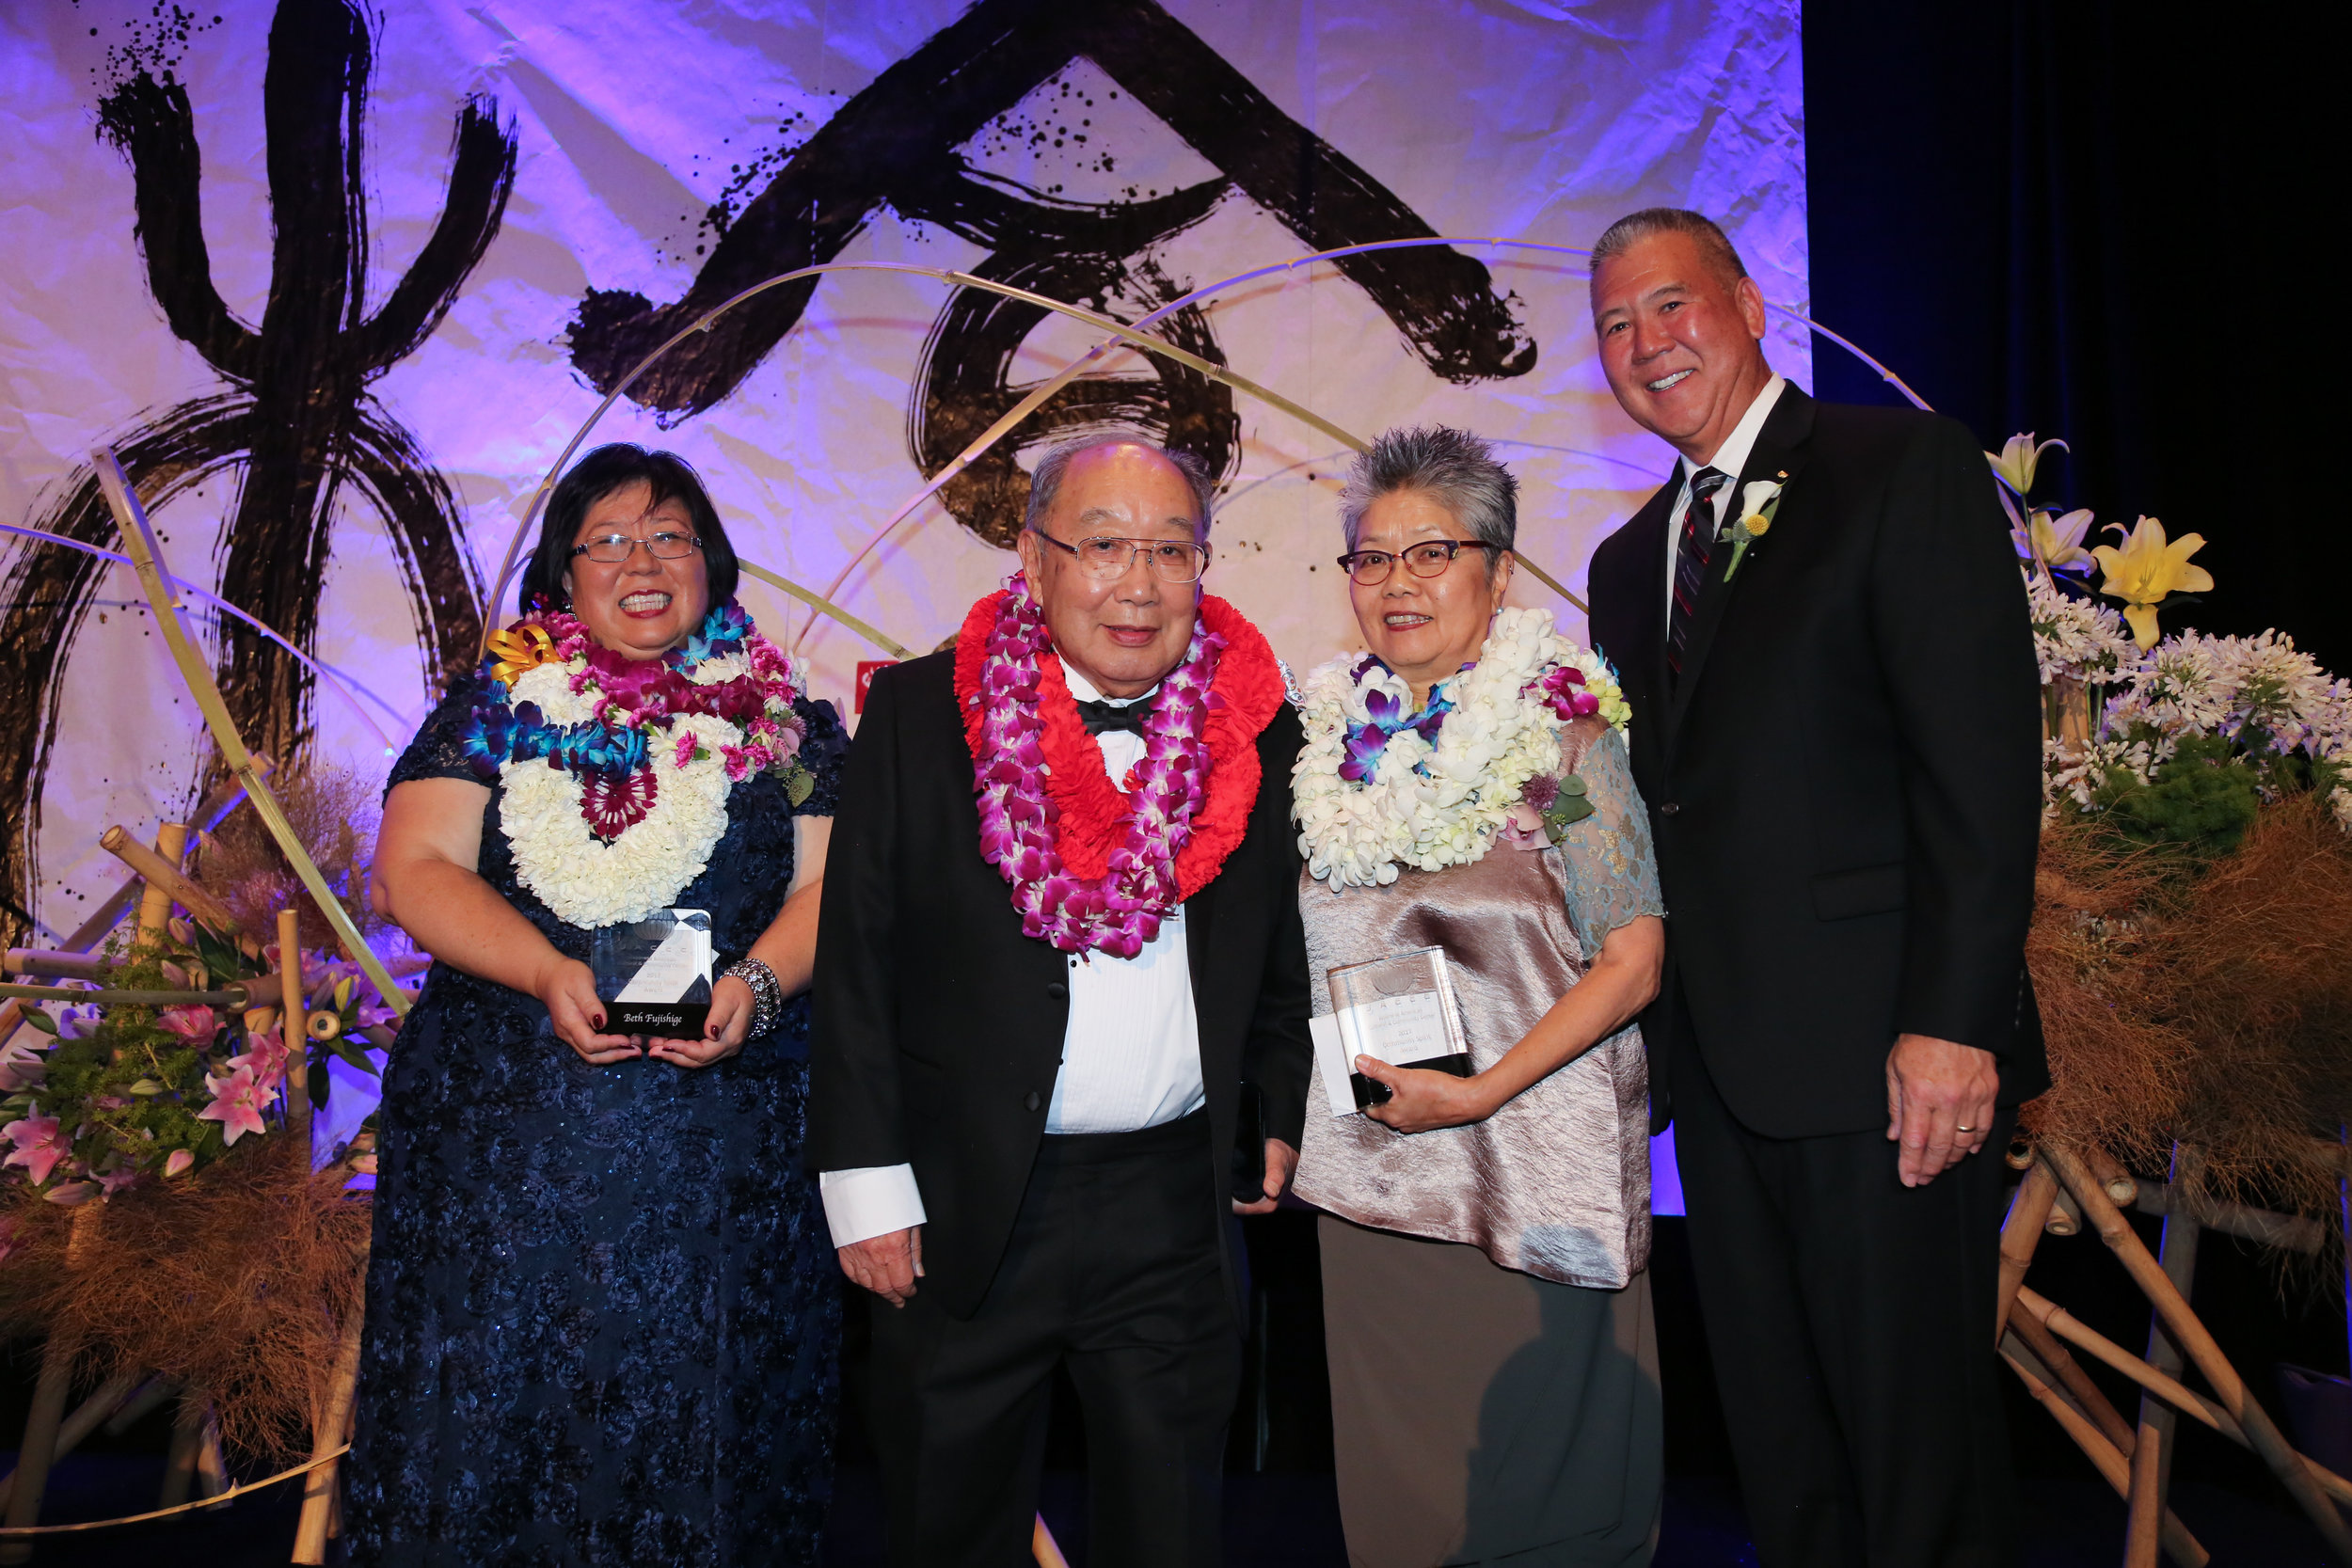 2017 Community Spirit Award recipients Beth Fujishige, Kanji Sahara, Evelyn Yoshimura, and 37th Anniversary Celebration Chair David Yamahata